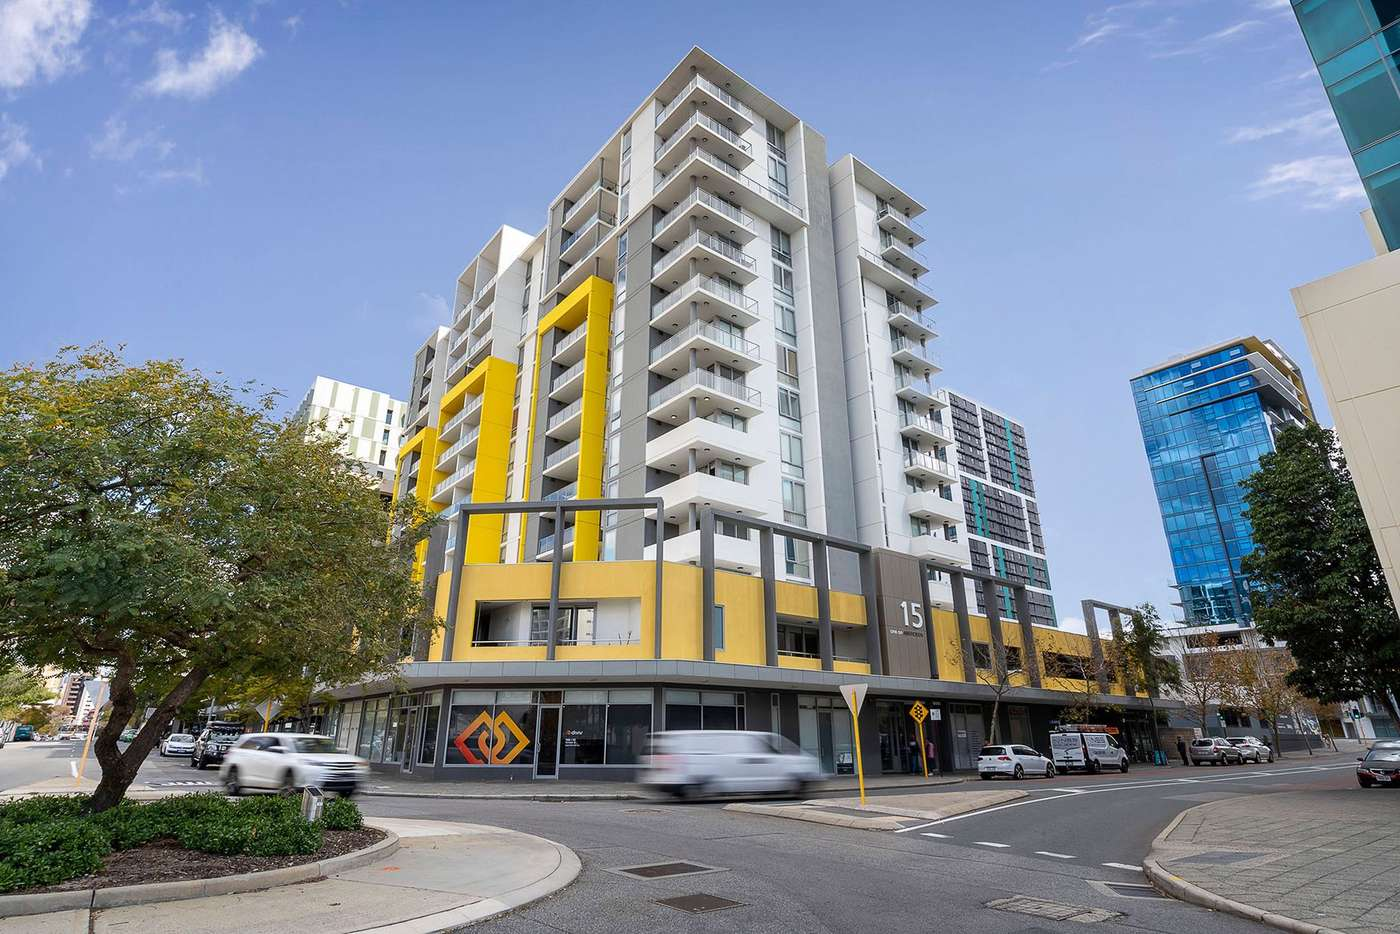 Main view of Homely apartment listing, 104/15 Aberdeen St, Perth WA 6000